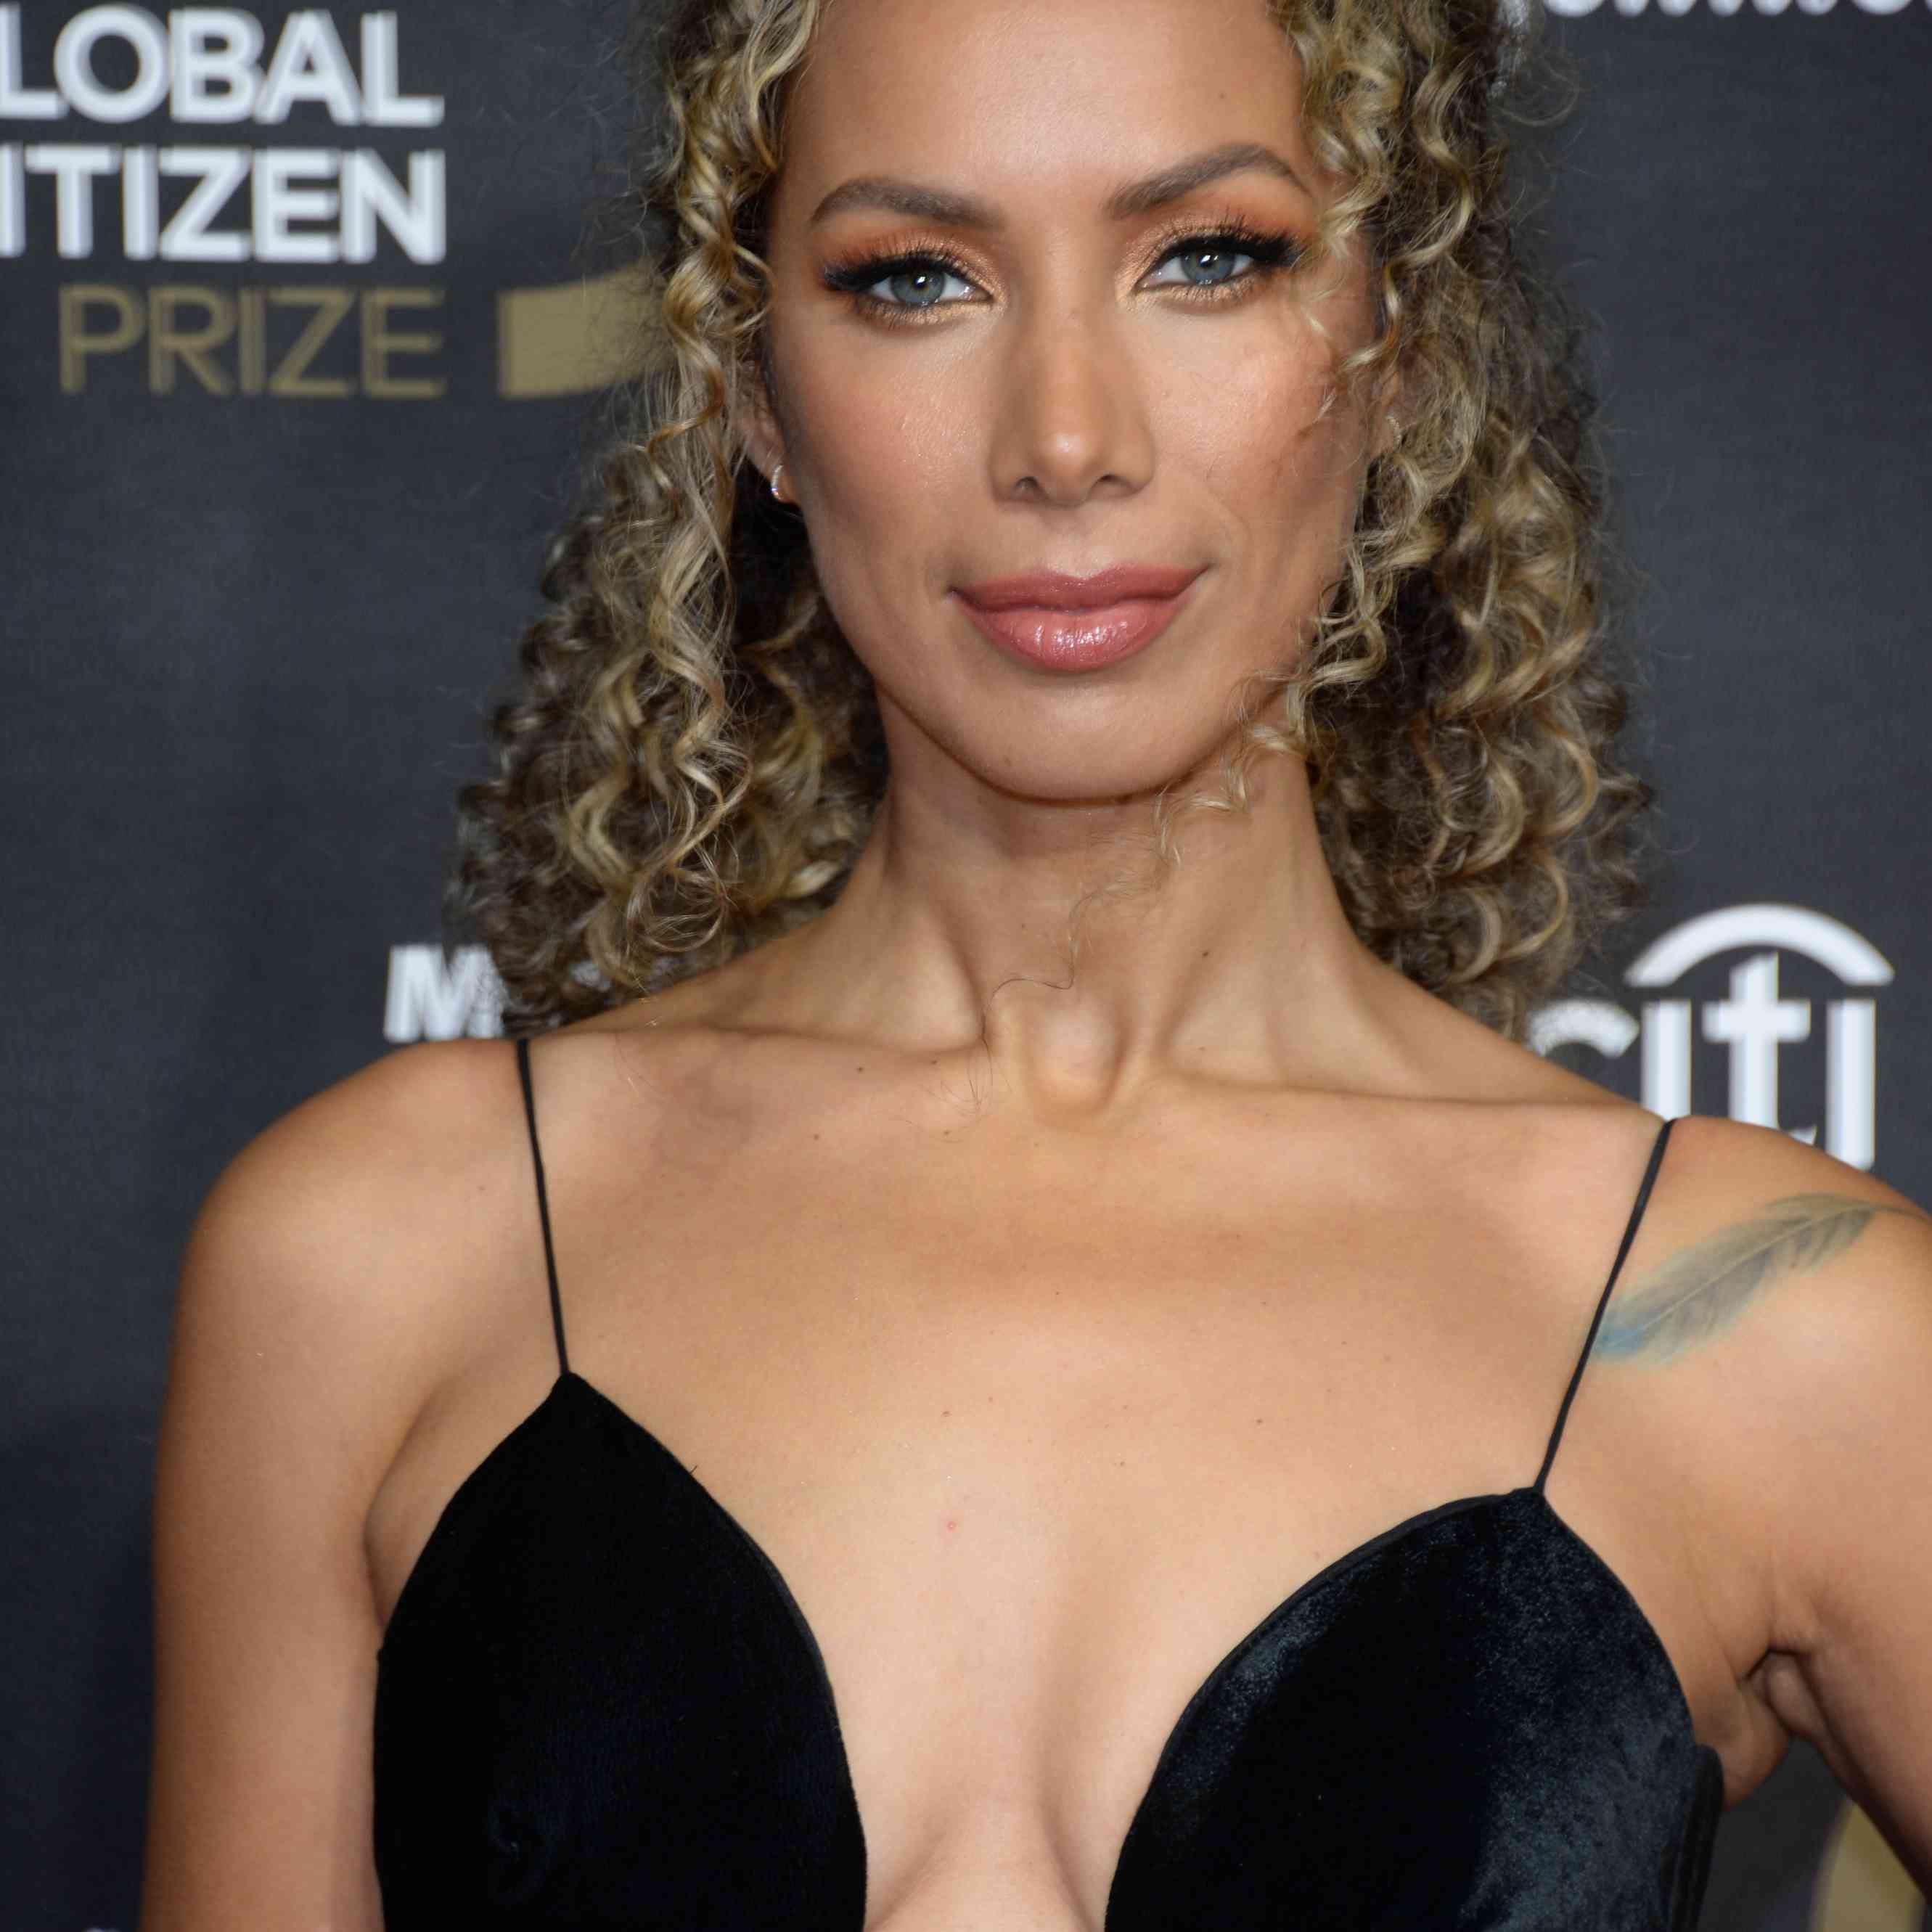 Leona Lewis at the Global Citizen Prize Red Carpet Arrivals